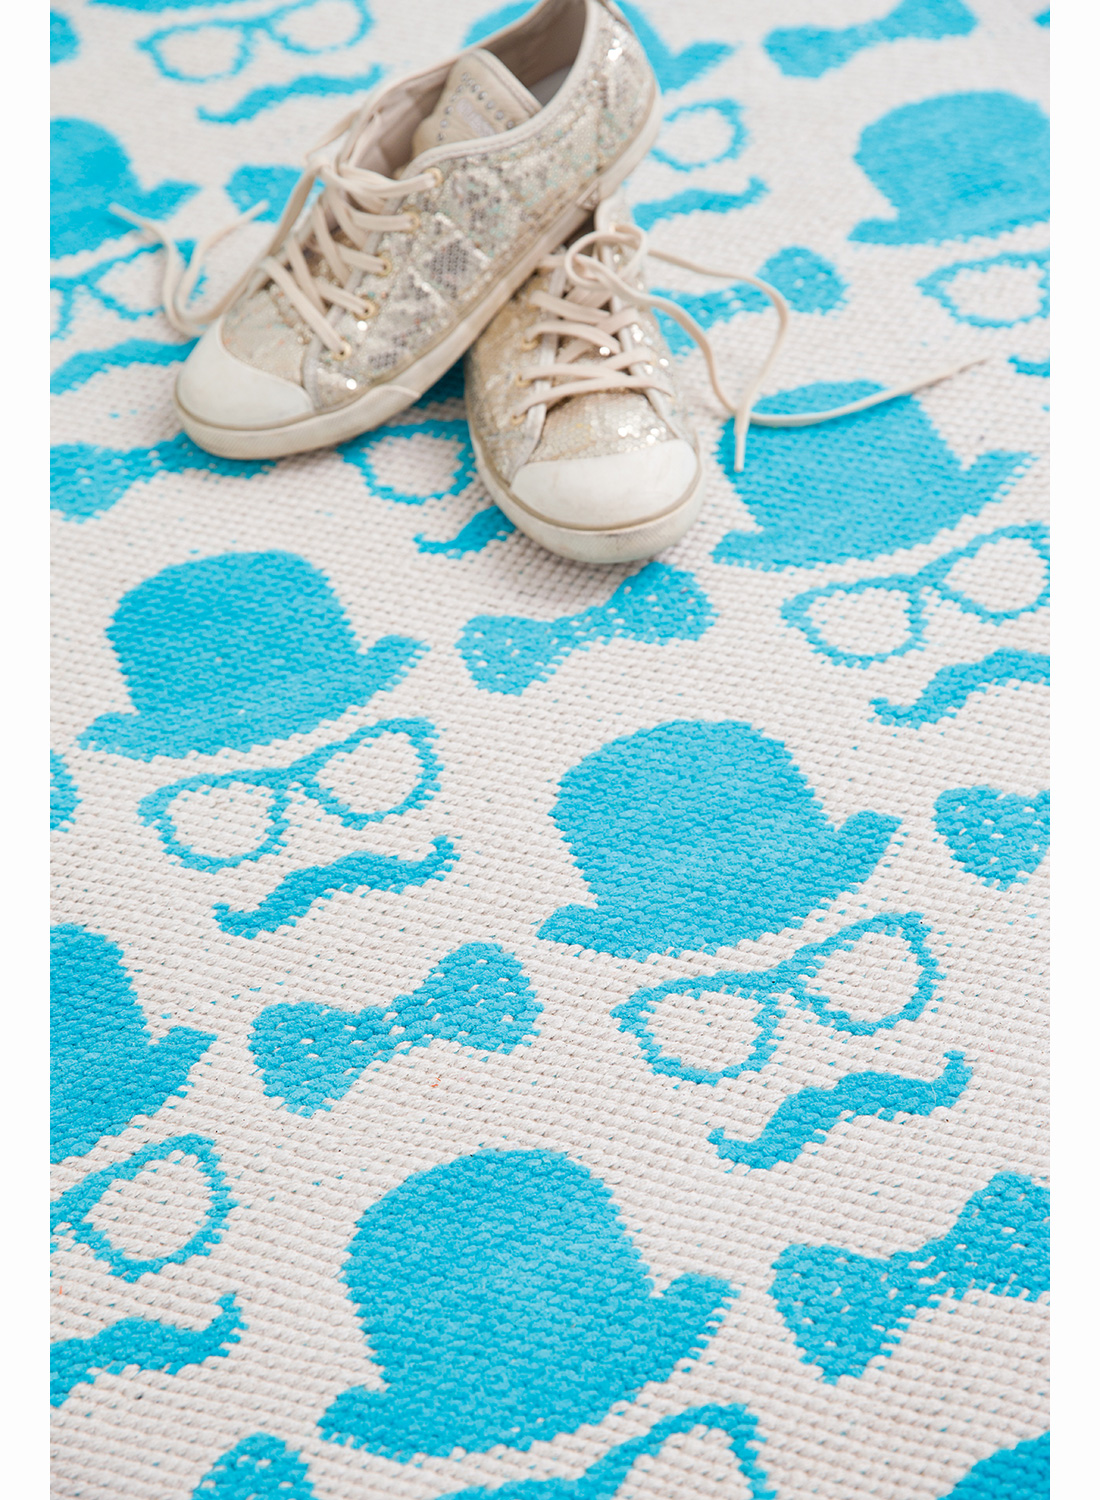 1000 Images About Tapis Pour Ados On Pinterest Moustache Sons And Fans